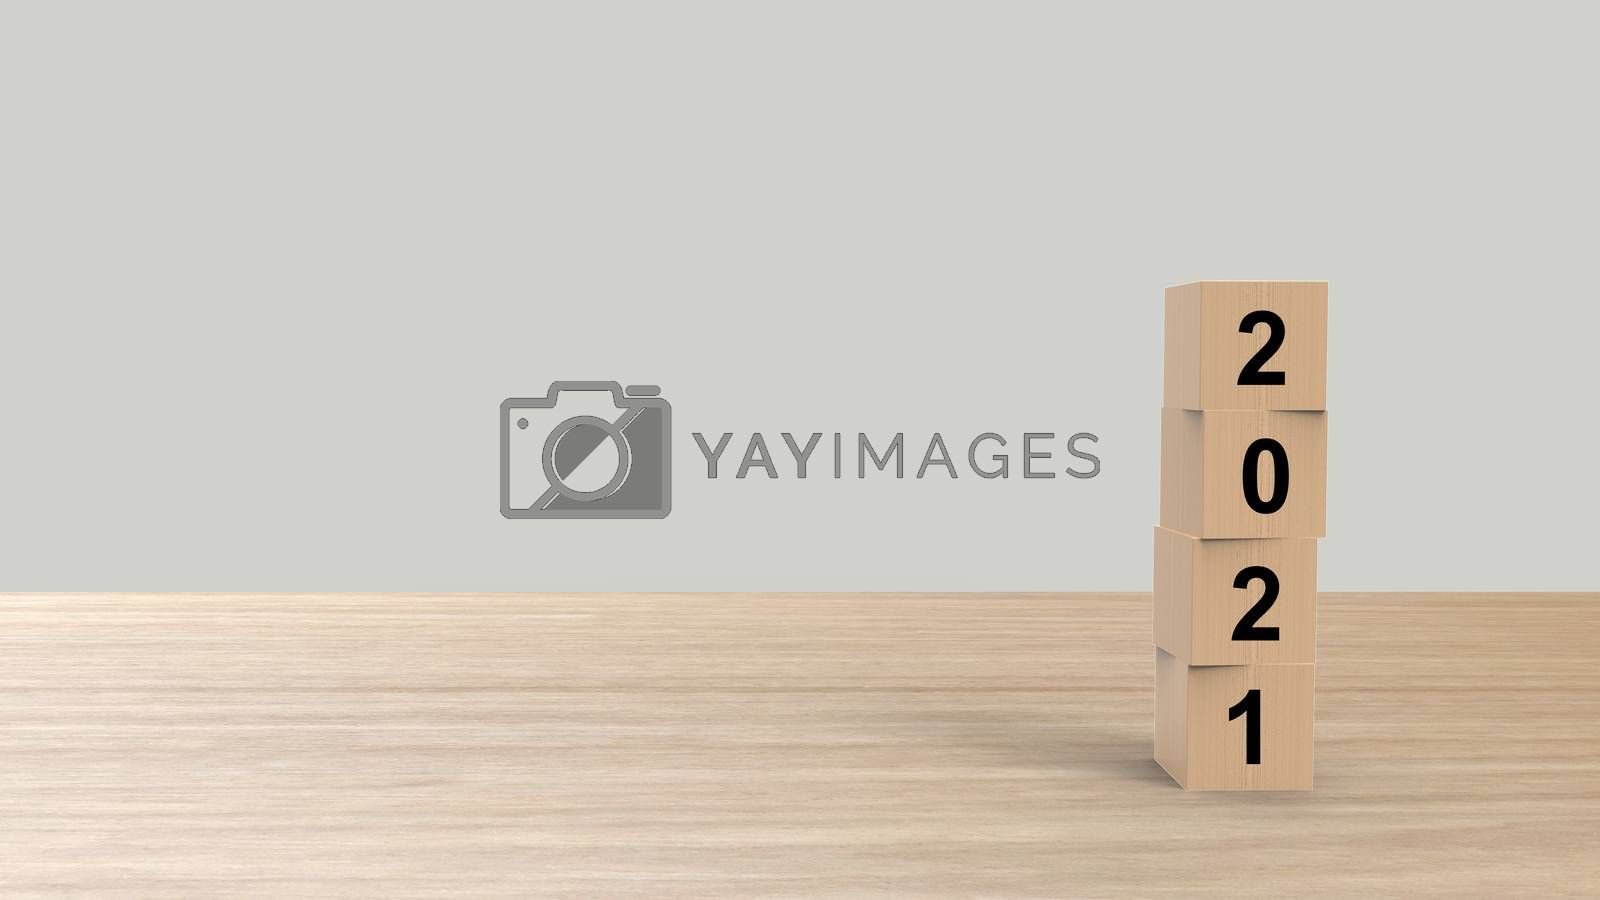 2021 numbers word Wooden cubes on table vertical over gray light background HD, mock up, template, banner with copy space for text, Happy New Year design concept. Celebration greeting, 3d render by Andreajk3